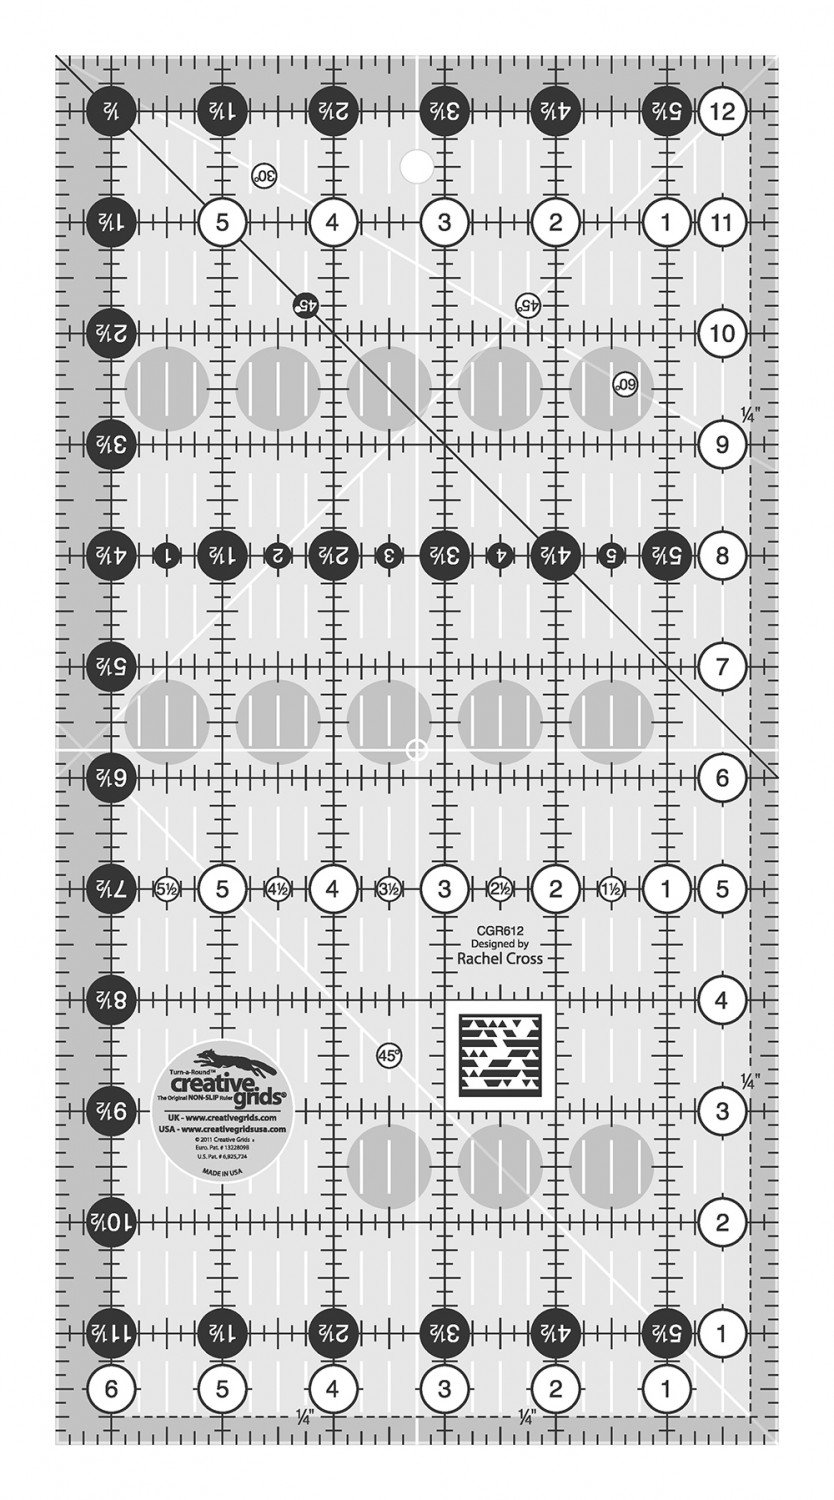 Creative Grids 6 1/2 x 12 1/2 Ruler